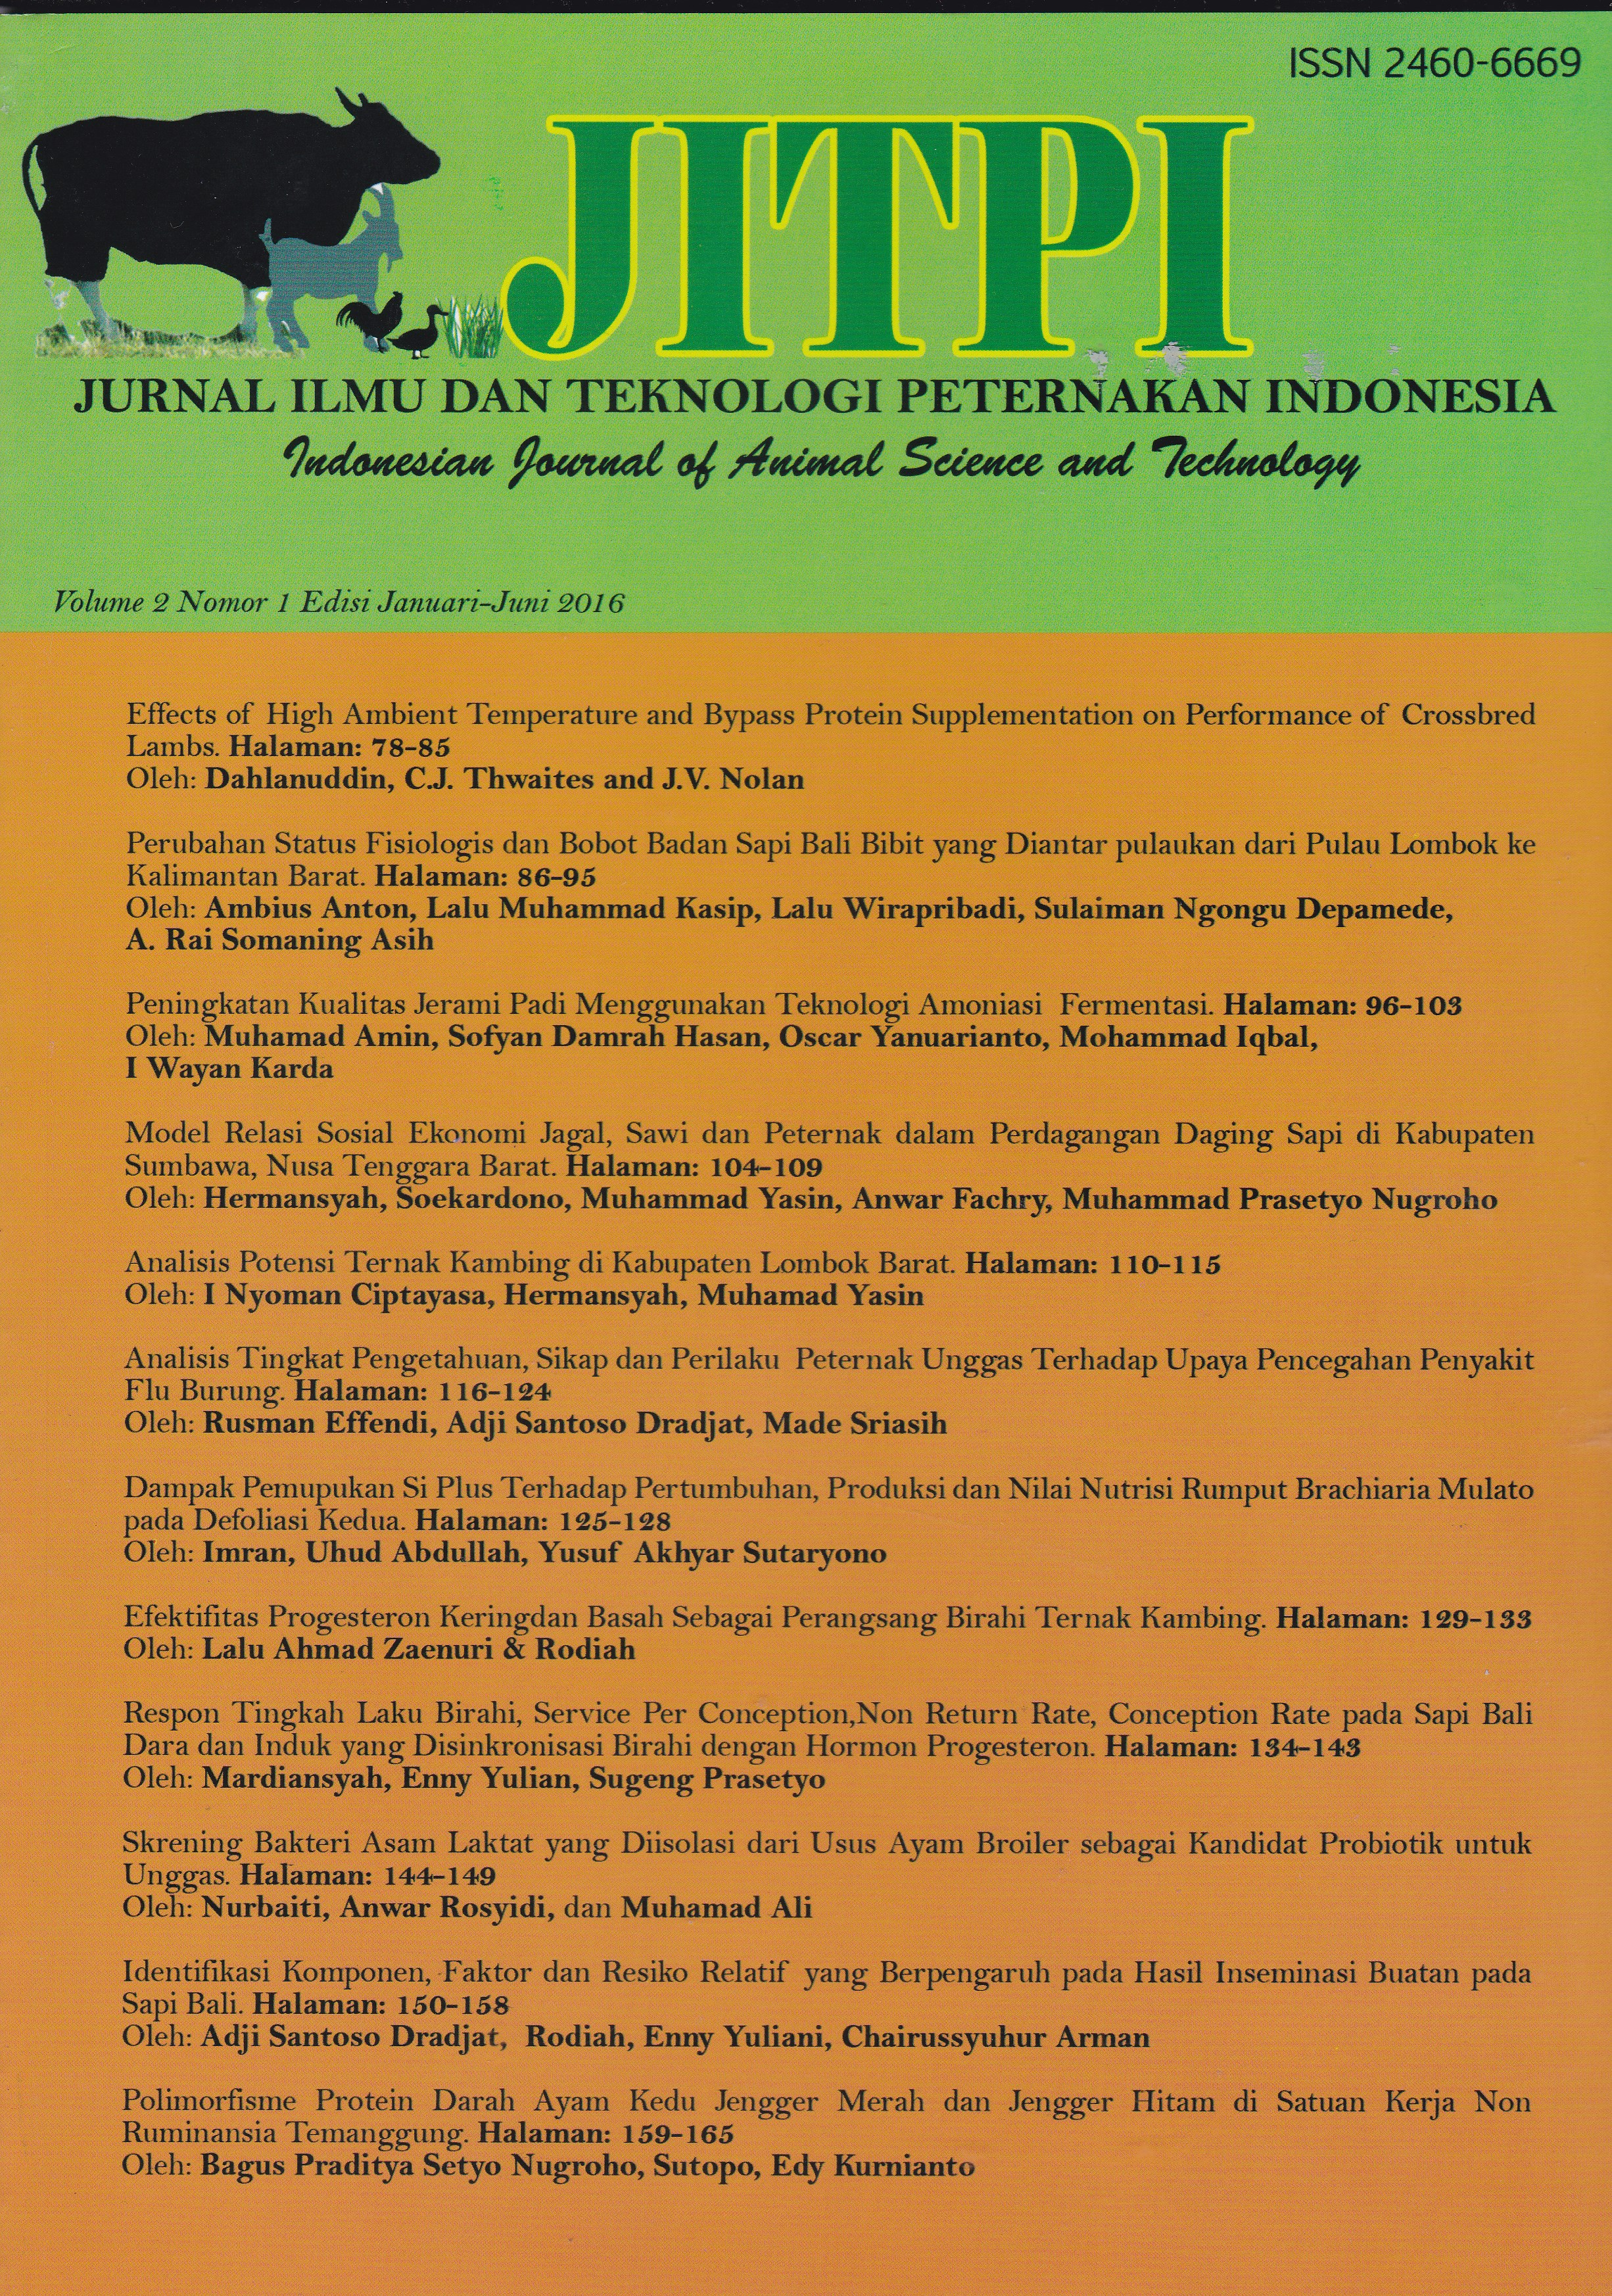 JURNAL ILMU DAN TEKNOLOGI PETERNAKAN INDONESIA Vol 2 No.1 2016/ Indonesian Journal of Animal Science and Technology Vol 2 No.1 2016